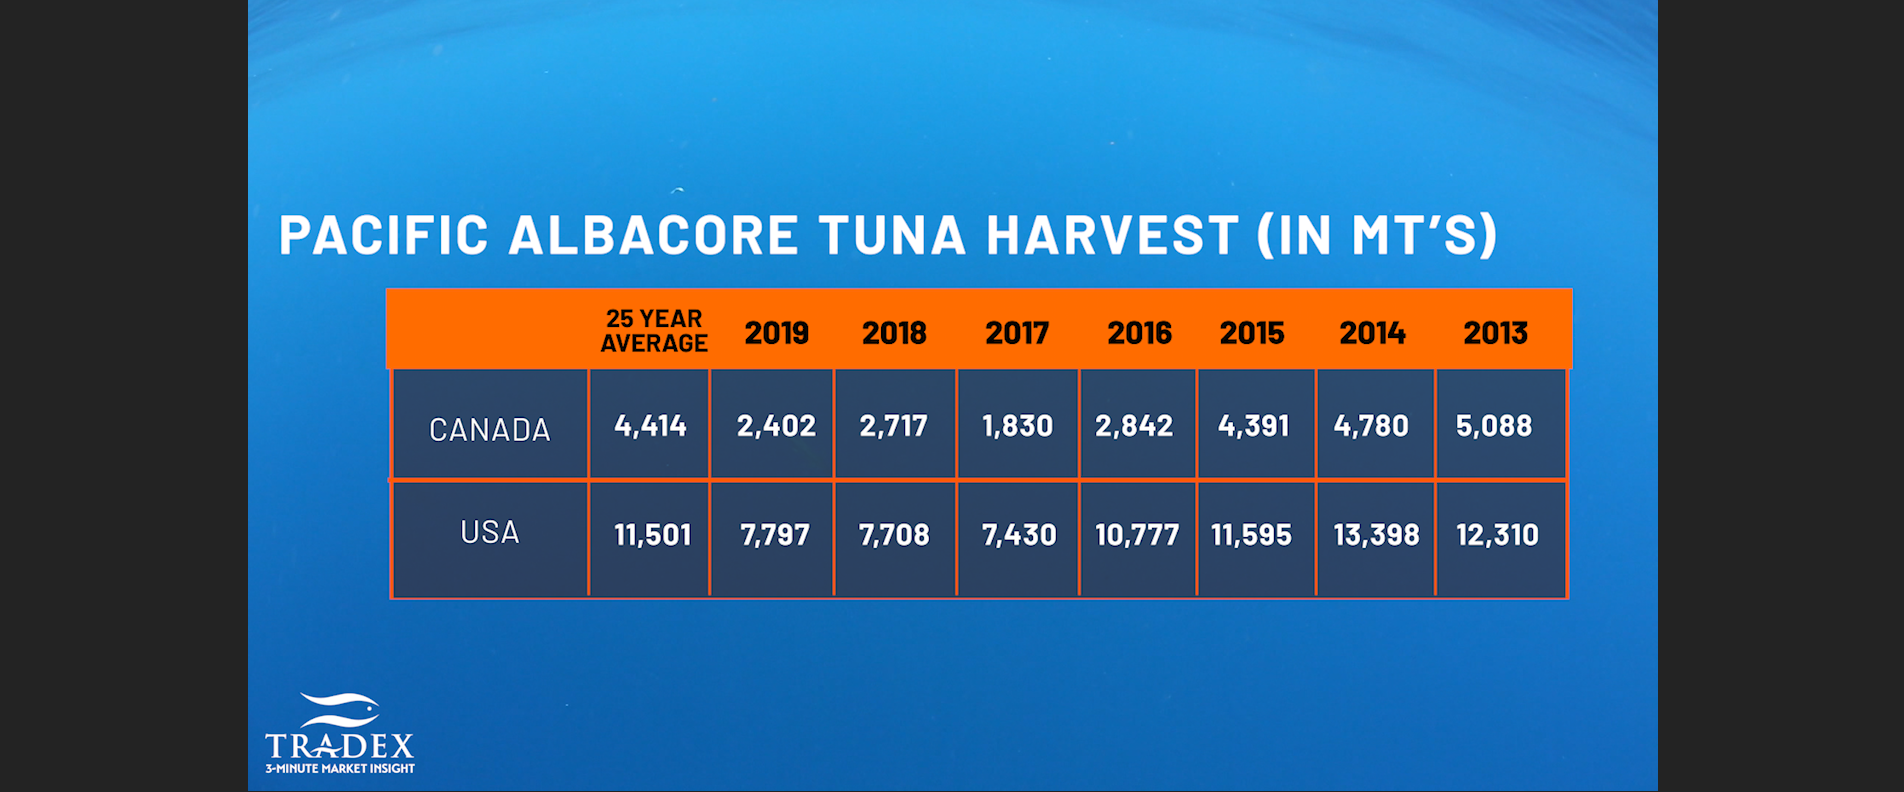 Current Pacific Albacore Tuna Landings